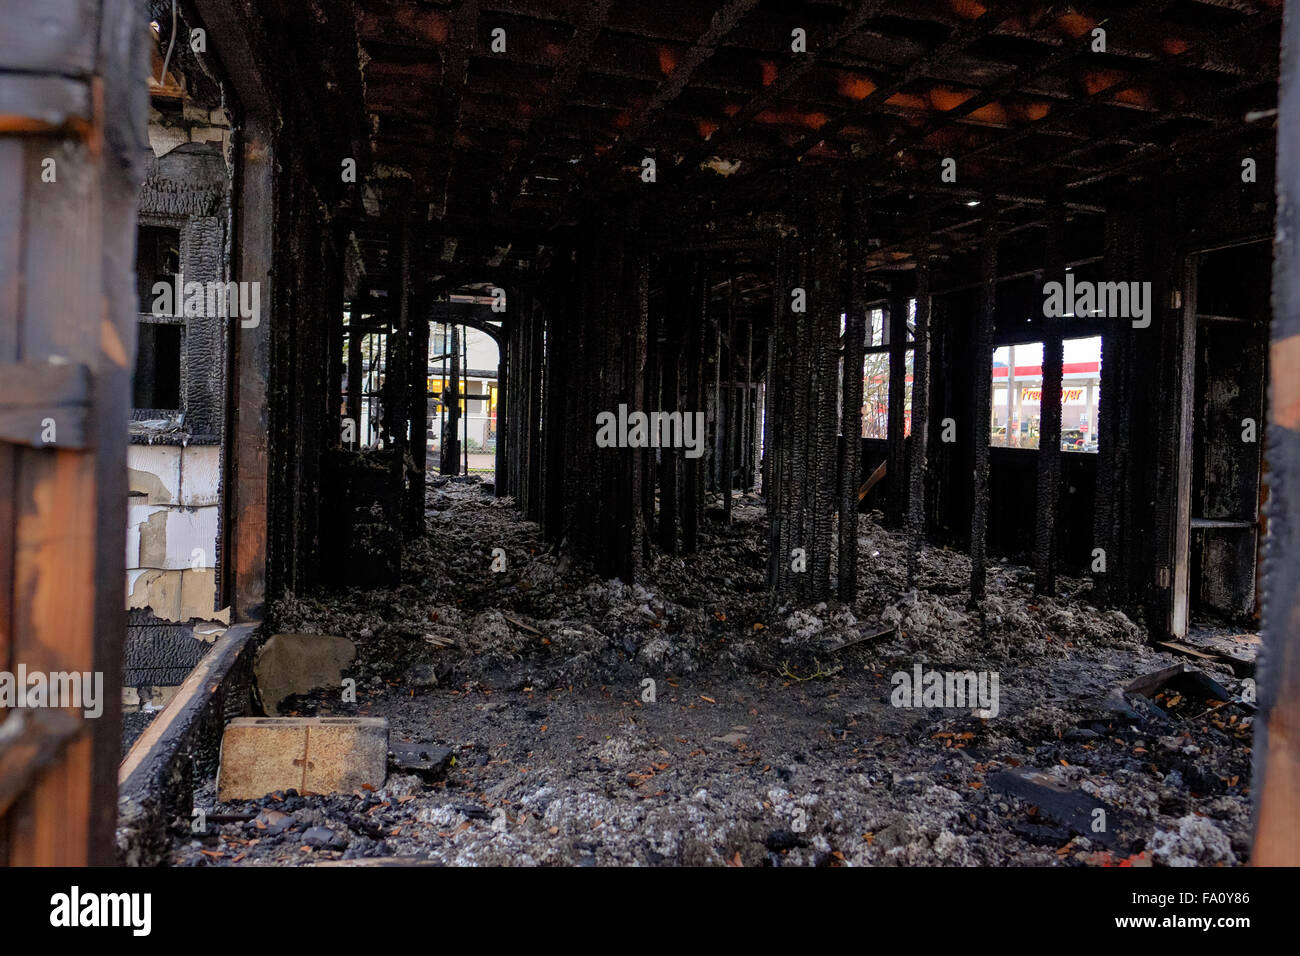 House burned almost completely in a major fire leaving only the damaged remains of this home. - Stock Image